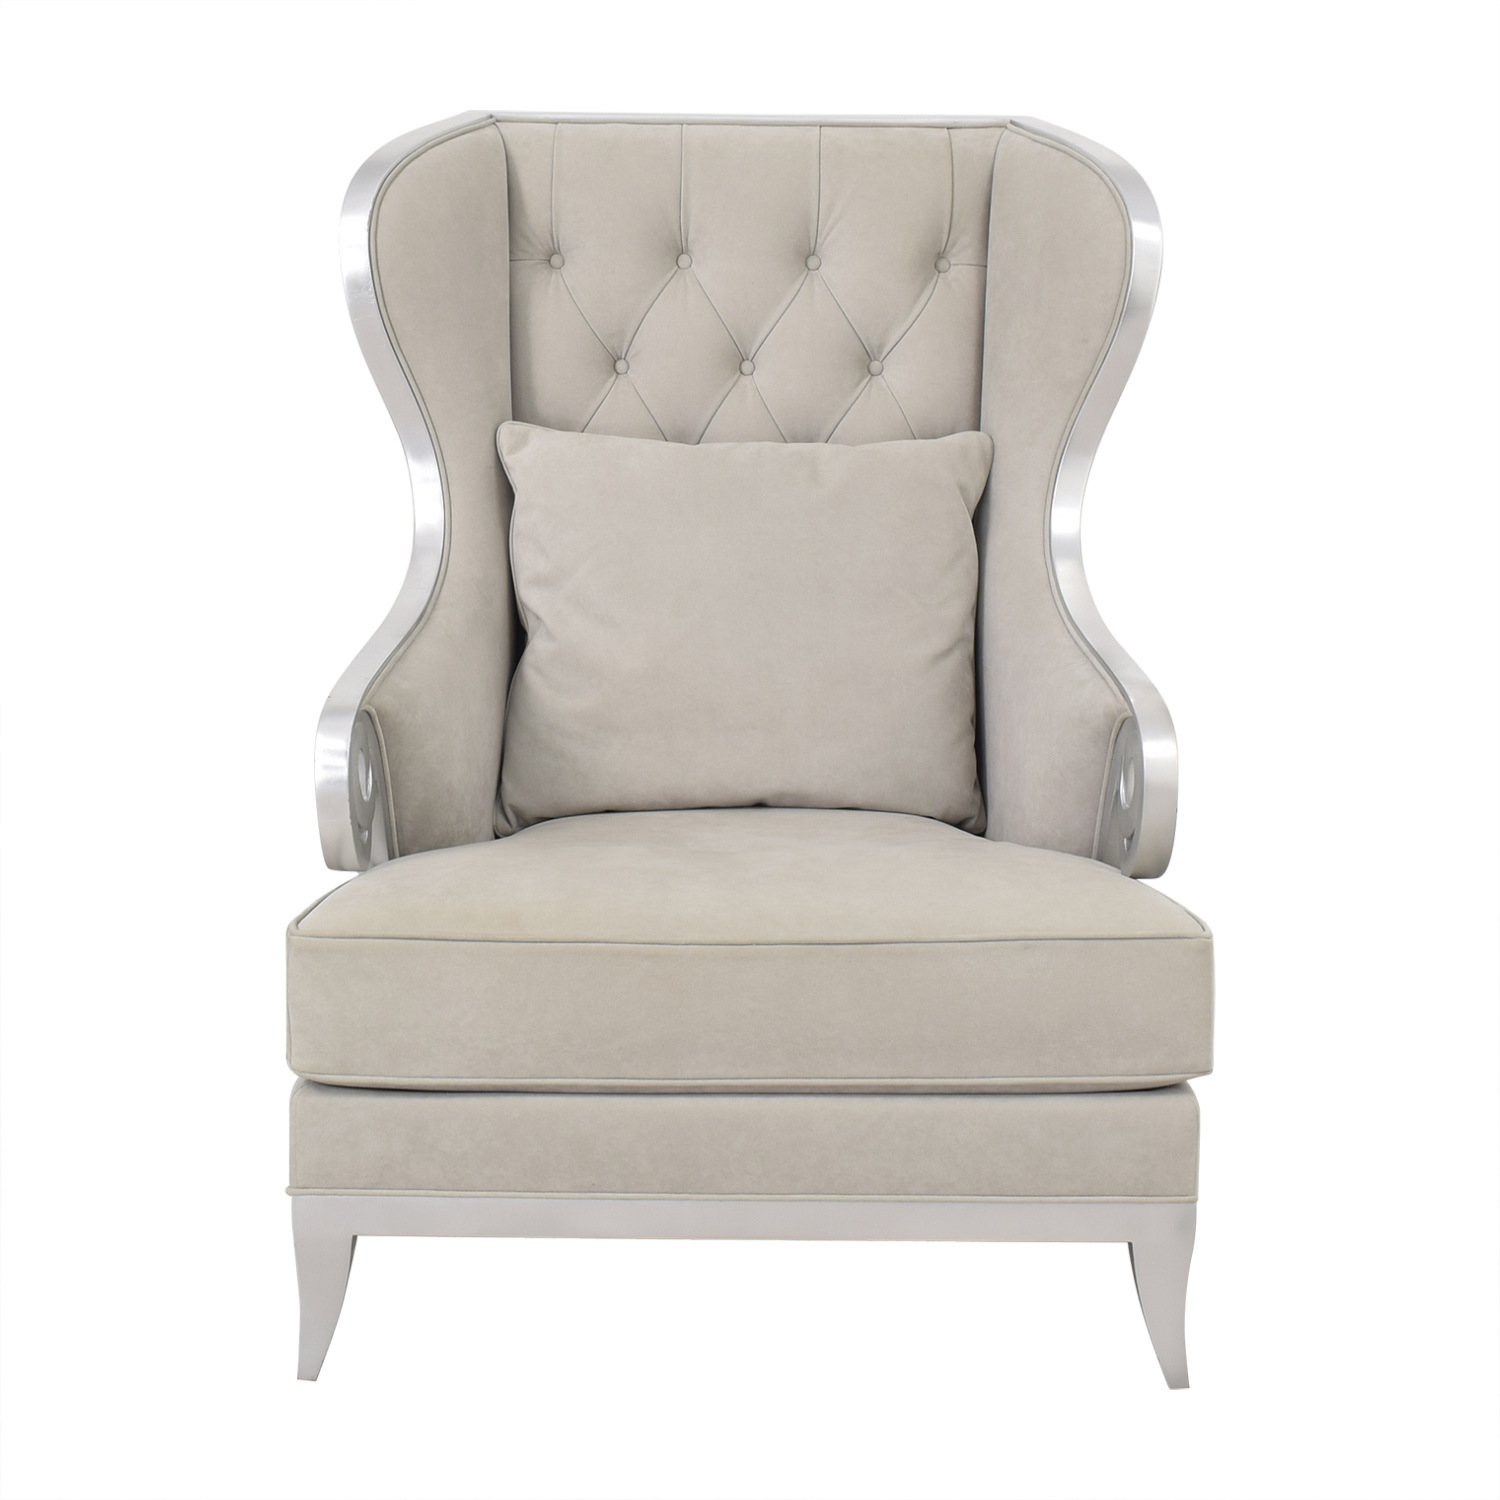 shop Christopher Guy for Style Forum Emily Chair Christopher Guy Accent Chairs